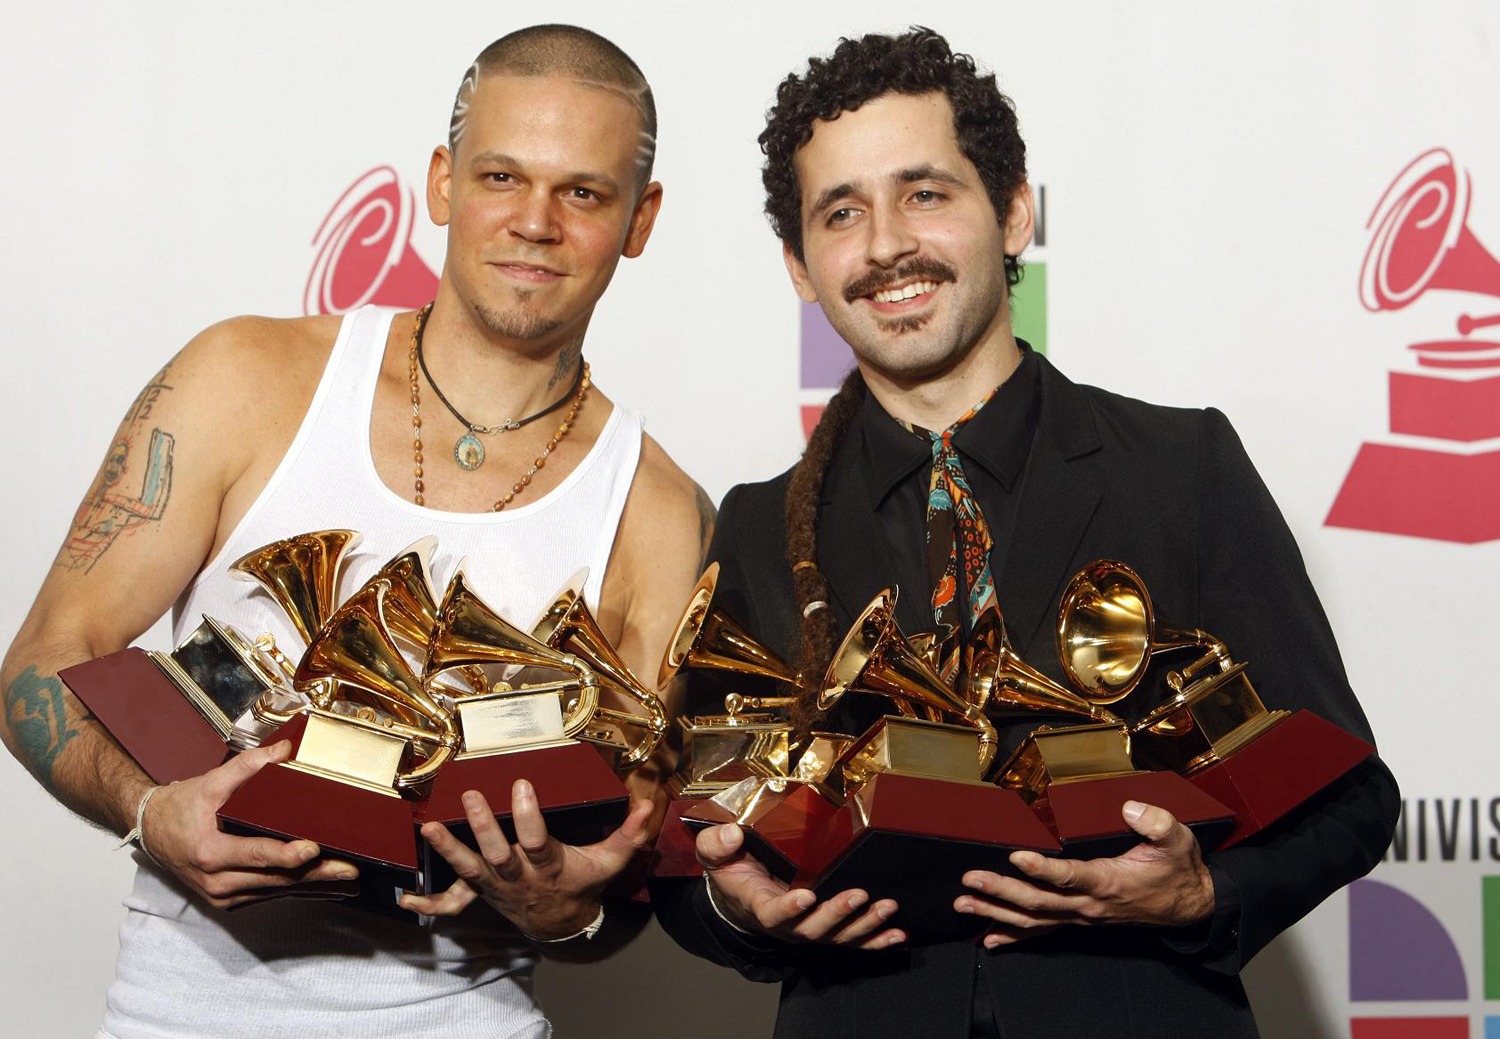 Rene Perez (L) and Eduardo Jose Cabra Martinez of the group Calle 13 pose with their awards at the 10th annual Latin Grammy awards in Las Vegas, Nevada November 5, 2009. REUTERS/Steve Marcus (UNITED STATES ENTERTAINMENT) MUSIC-GRAMMYS